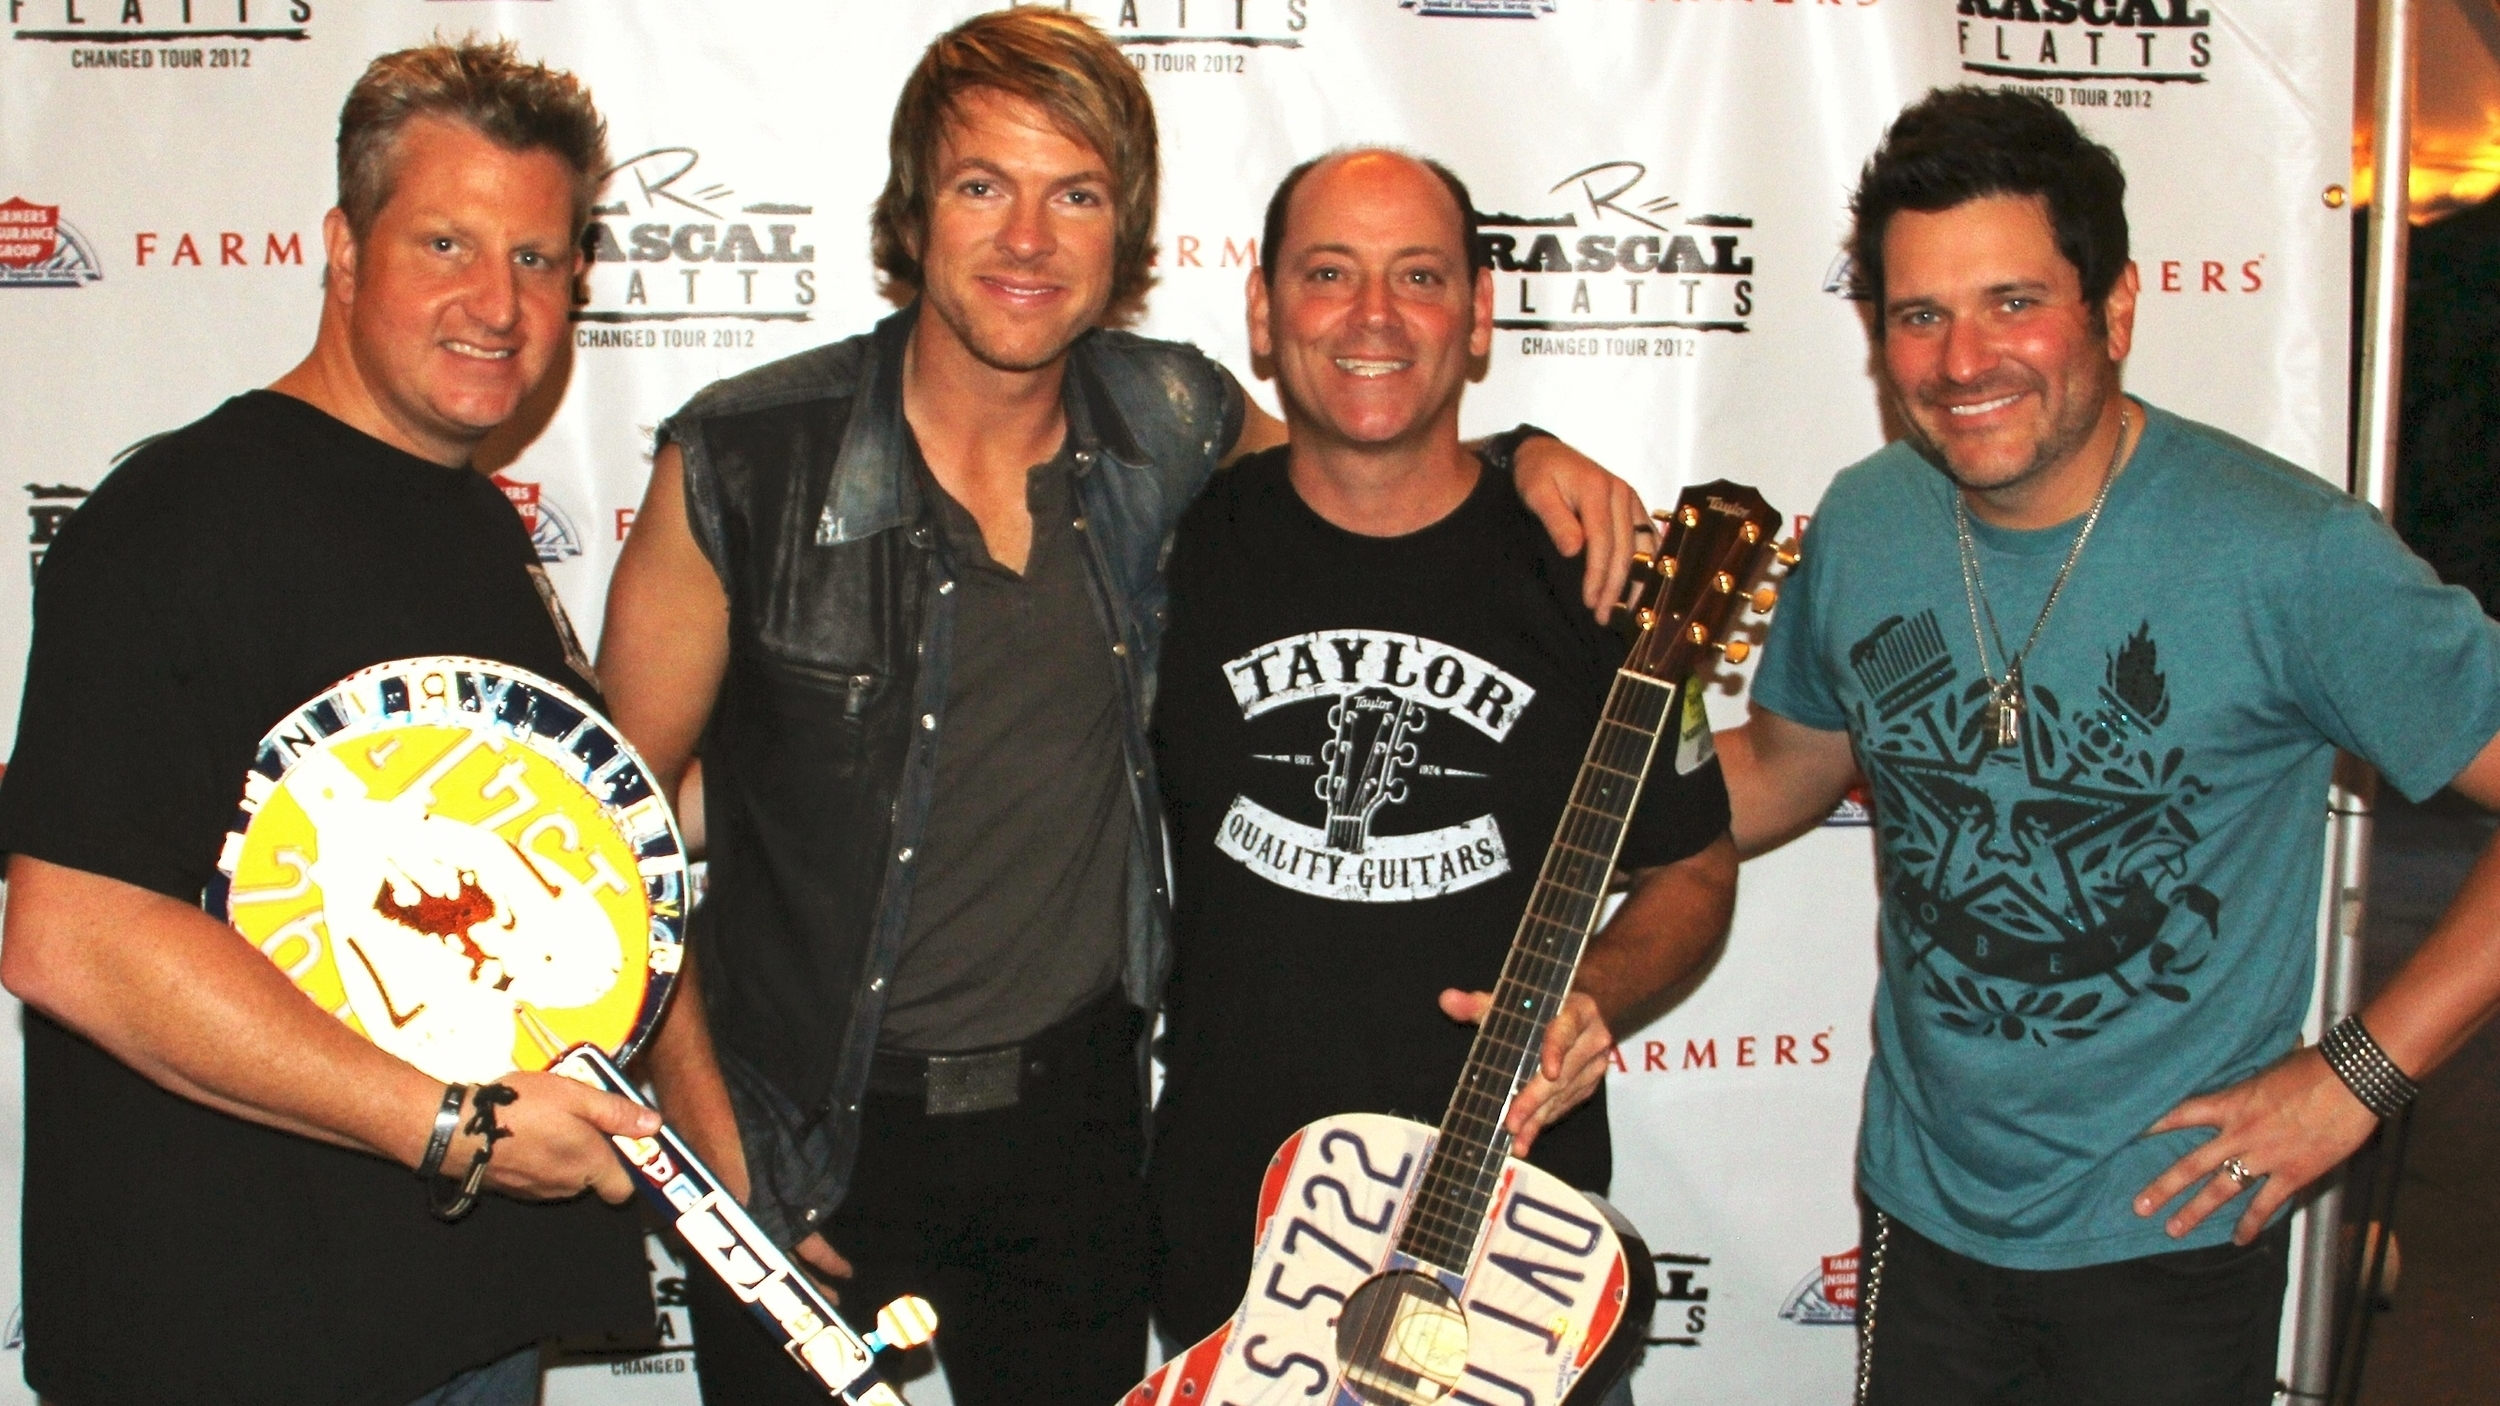 Pete with Rascal Flatts and the guitar he created for their 2012 Changed Tour.